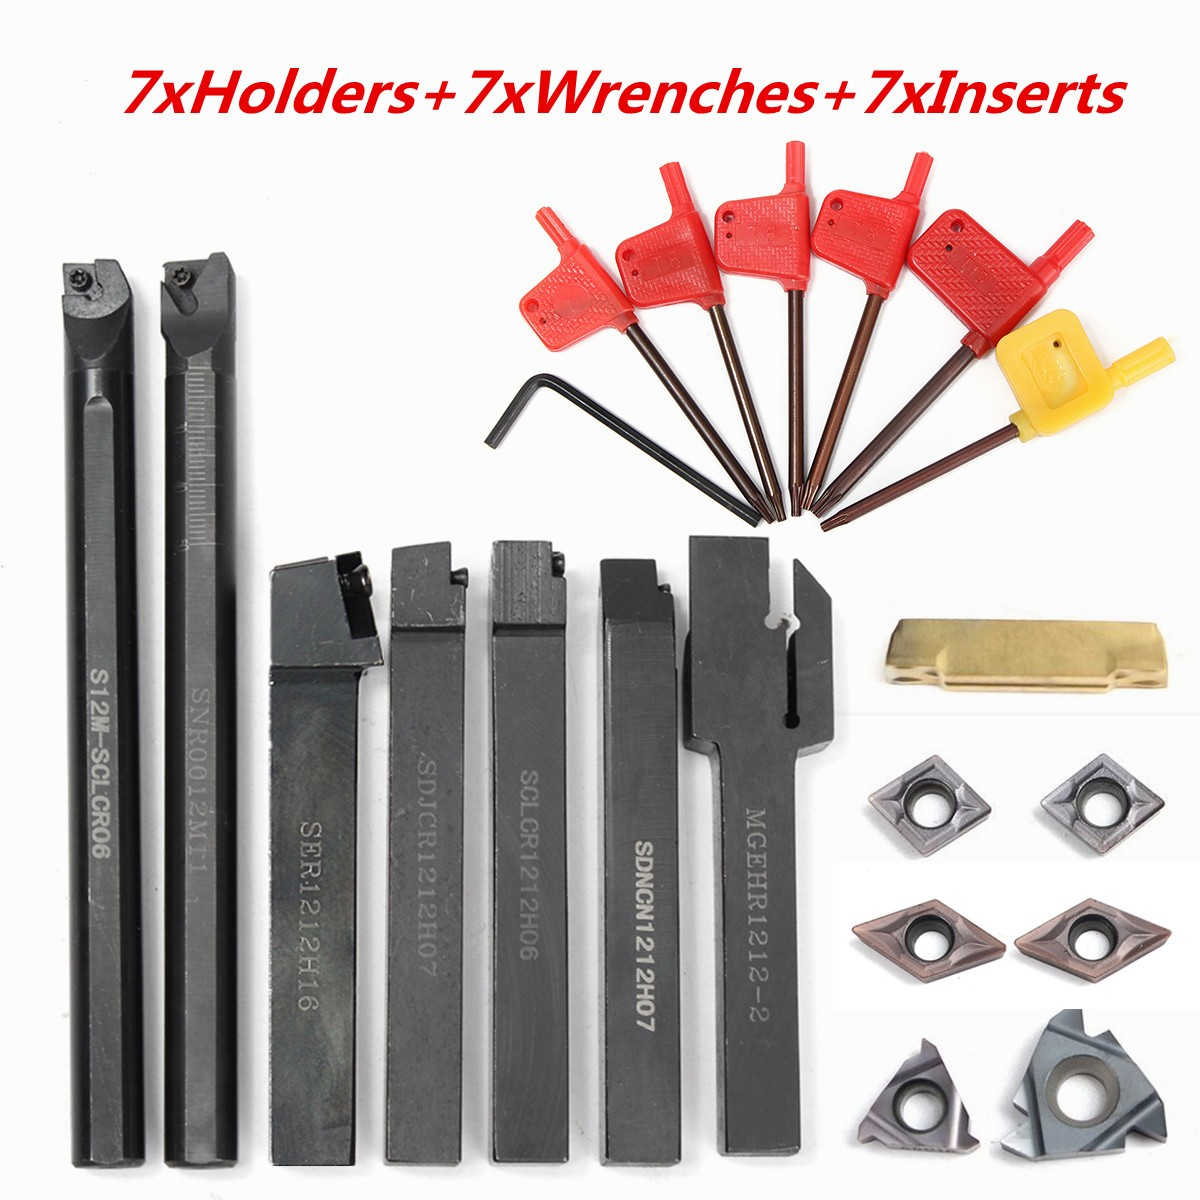 21pcs/set 12MM Lathe Turning Tool Holder Boring Bar+ DCMT CCMT Carbide Inserts + Wrench For Lathe Turning Tool